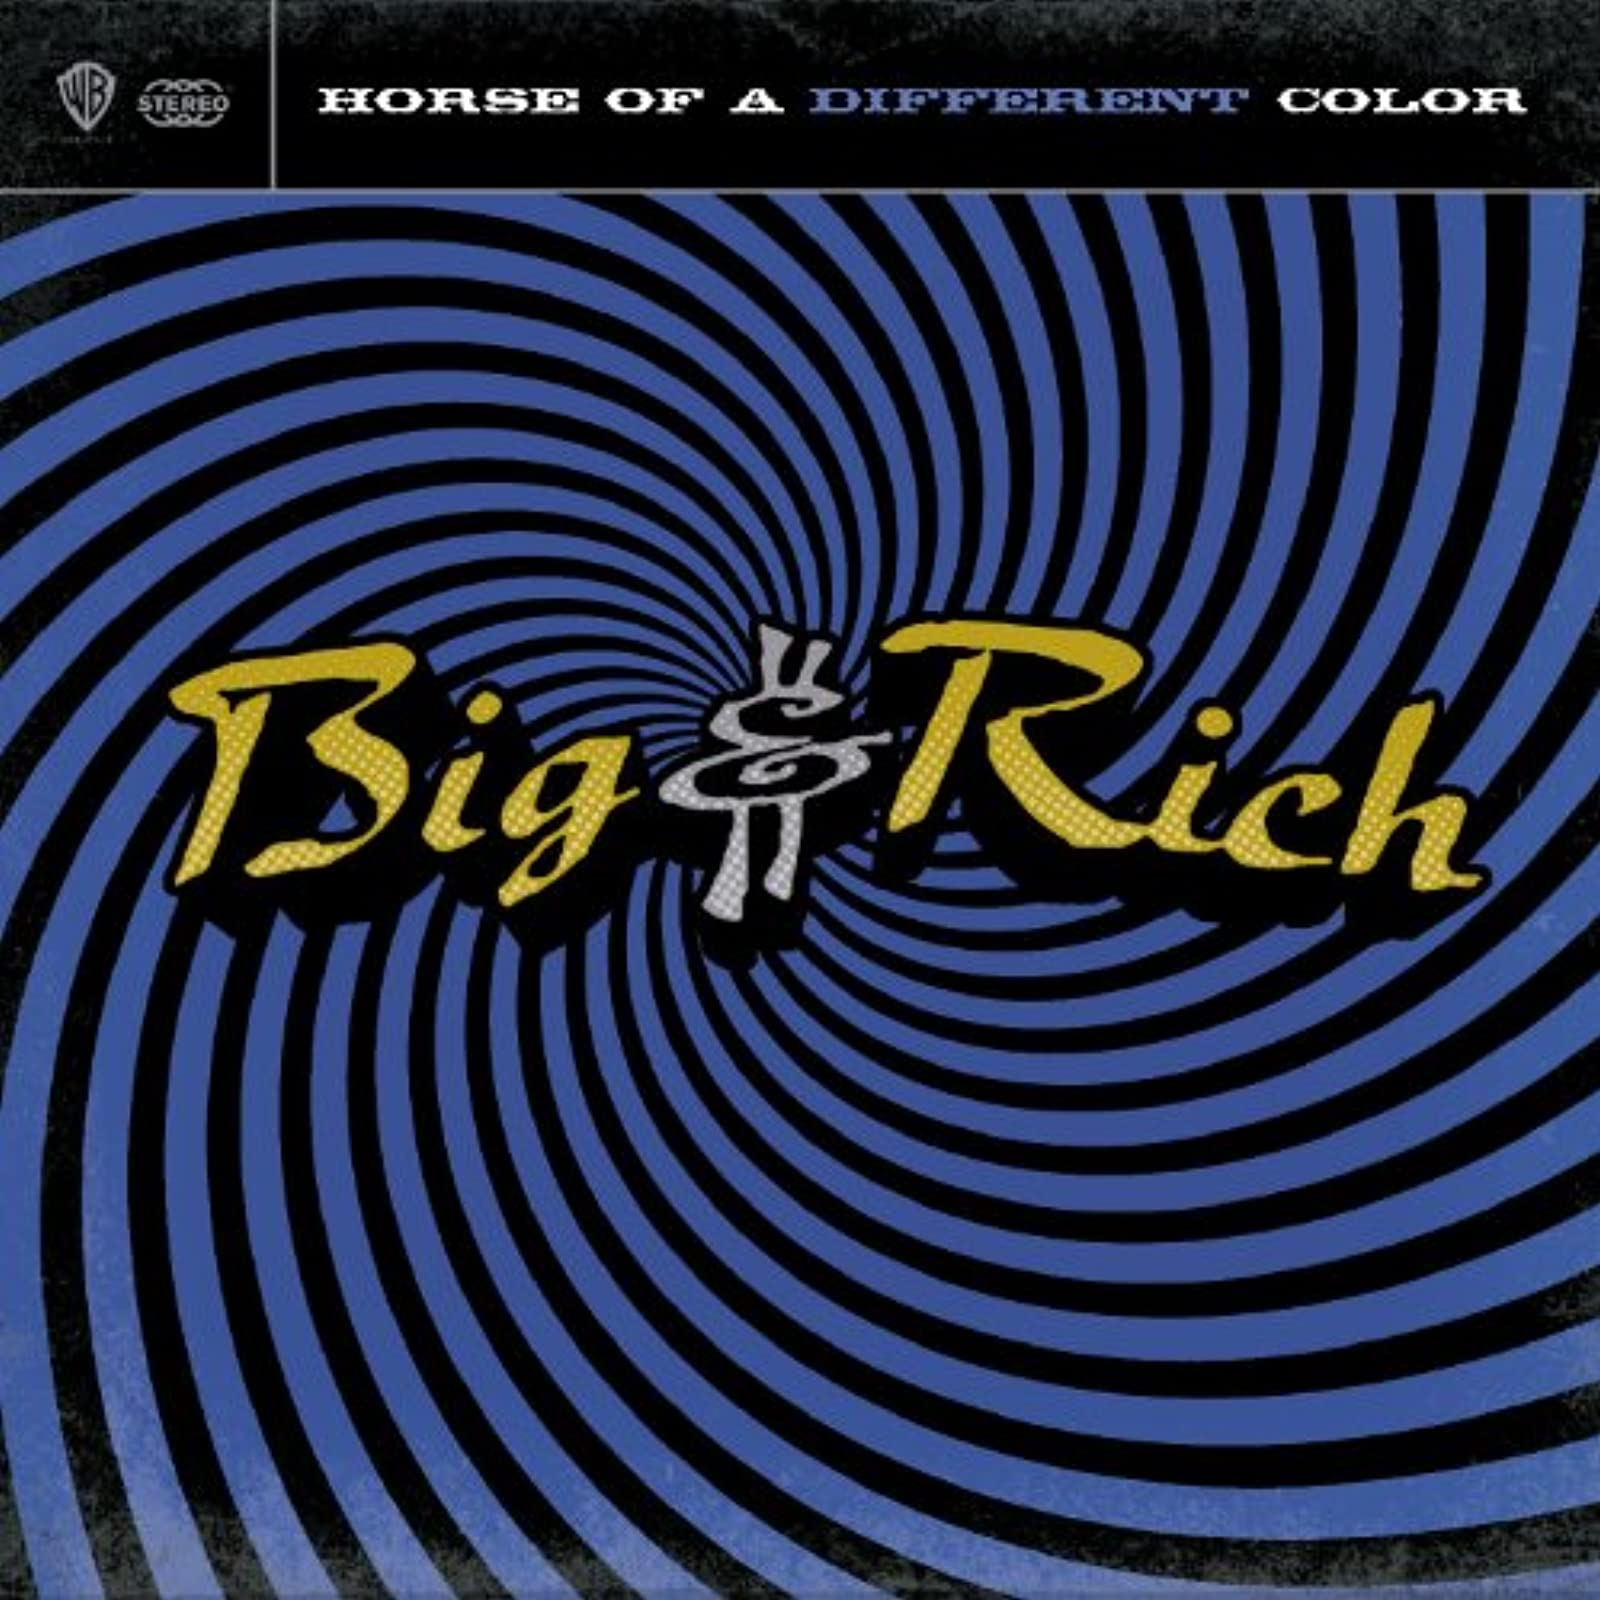 Image 0 of Horse Of A Different Color By Big And Rich On Audio CD Album 2004 by